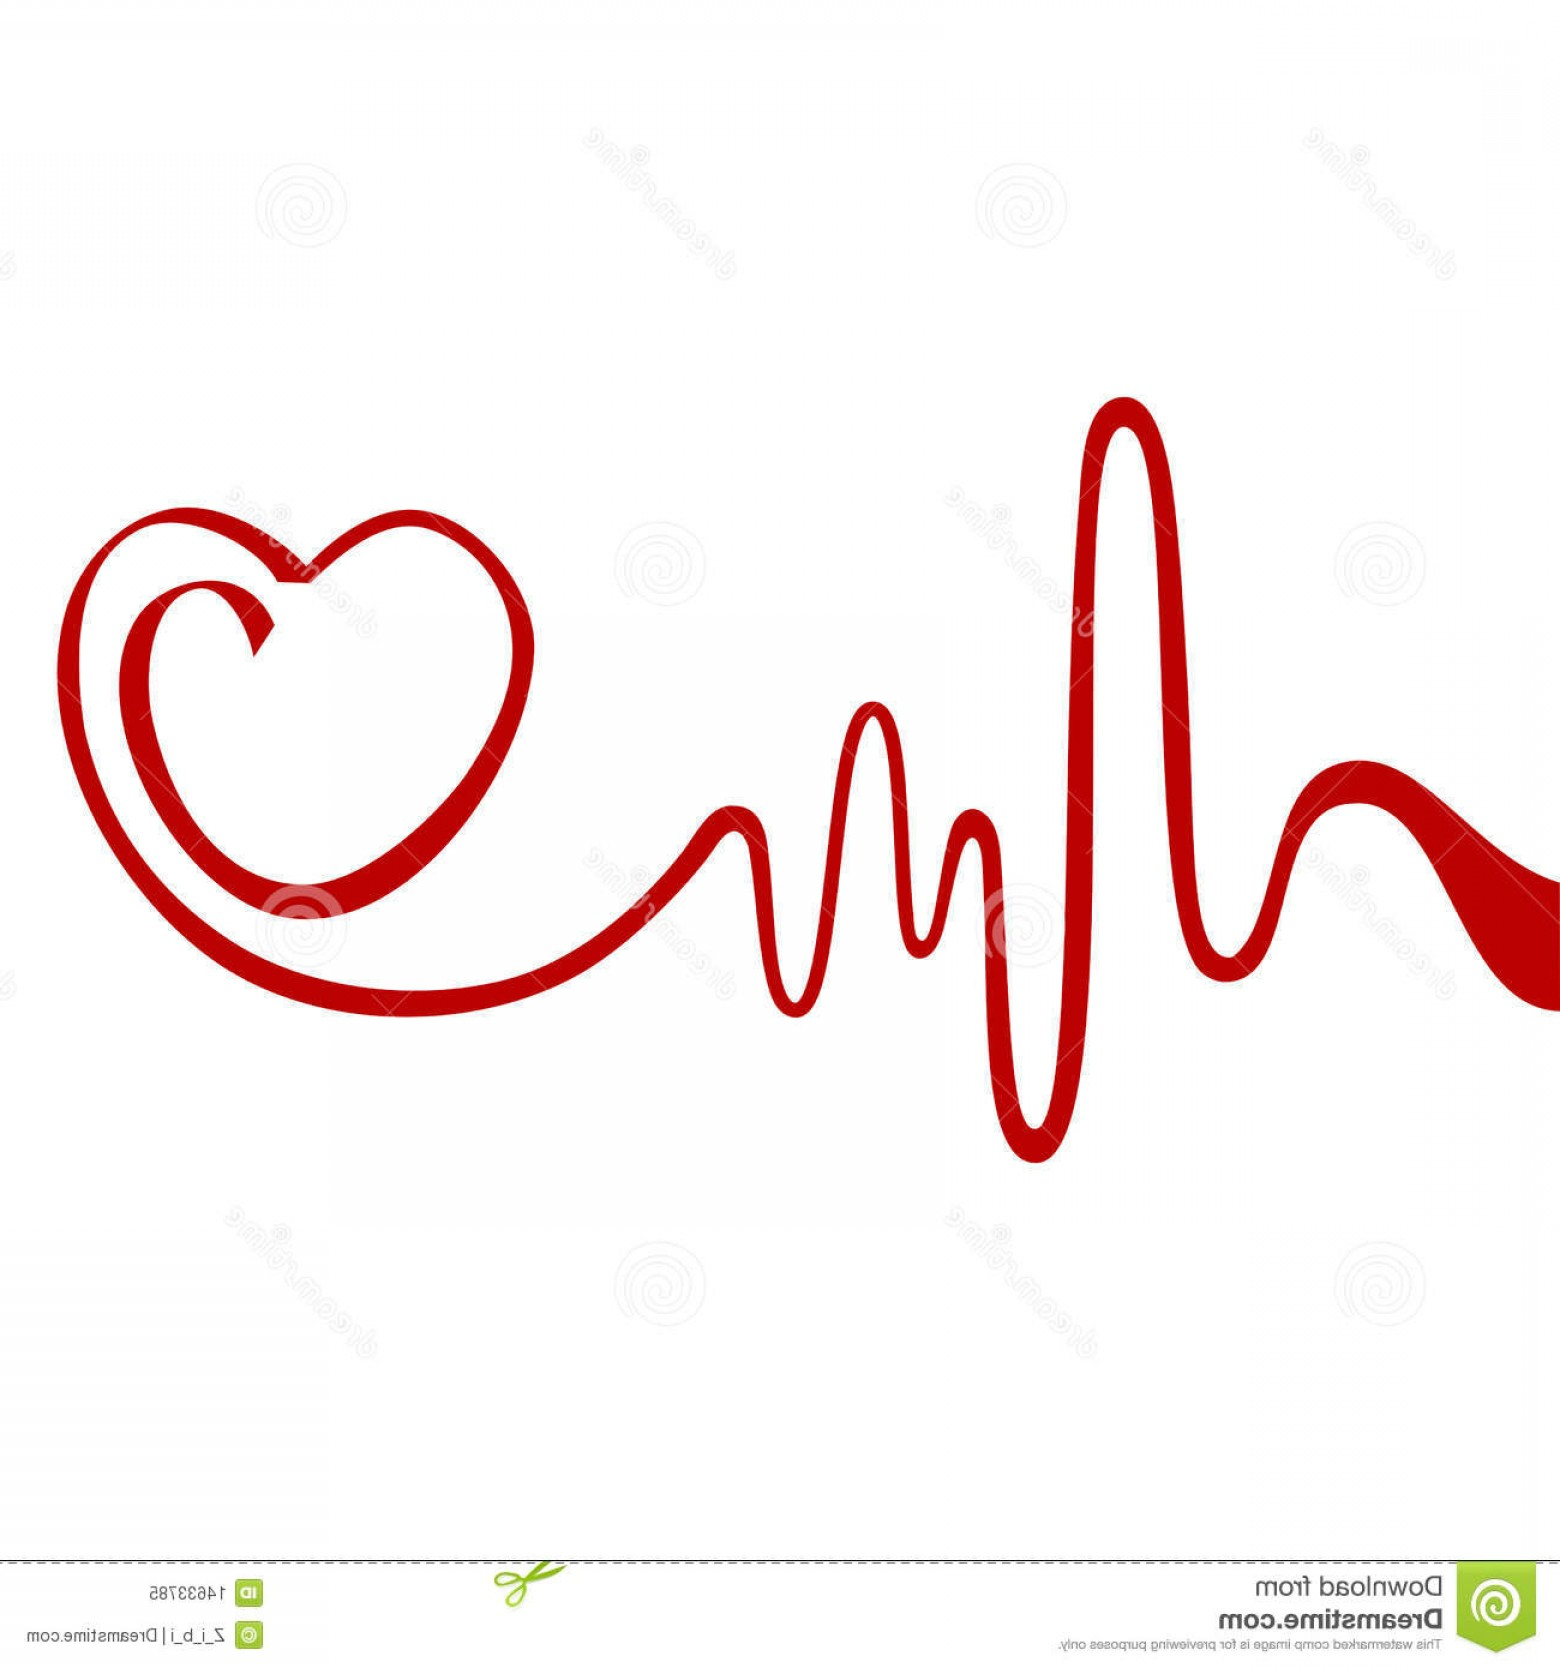 Heart With EKG Line Vector: Royalty Free Stock Photo Heart Image